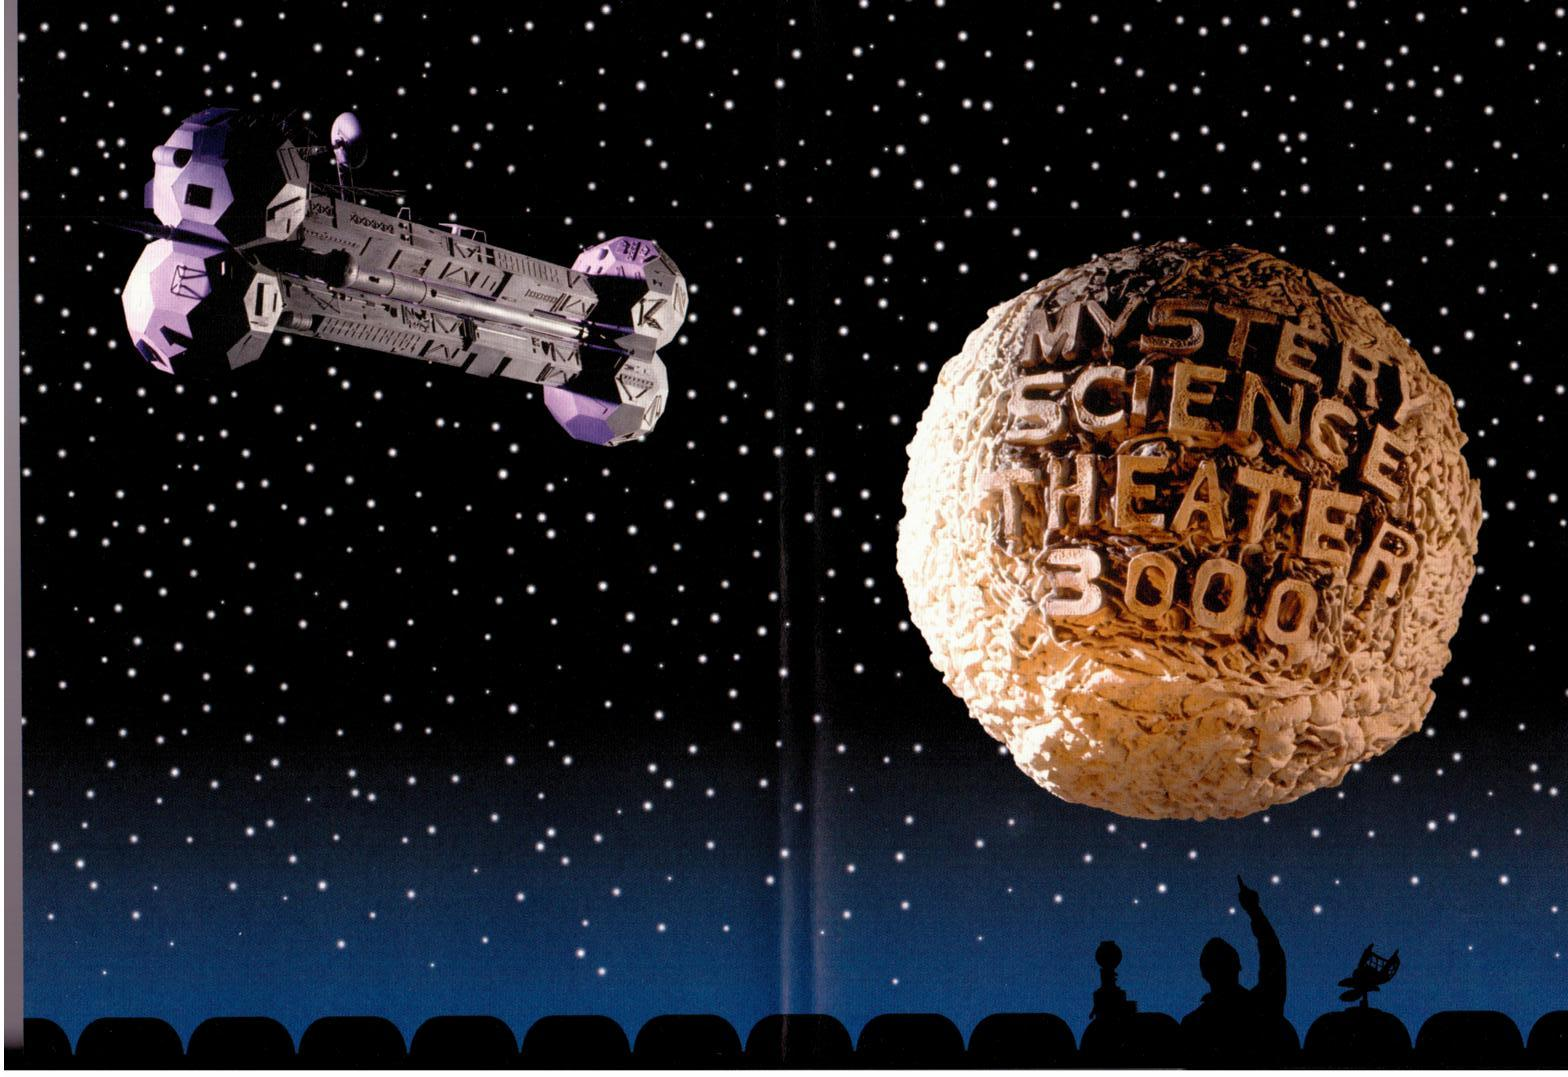 Live Falls Wallpaper Free Download Download Mst3k Wallpaper Gallery